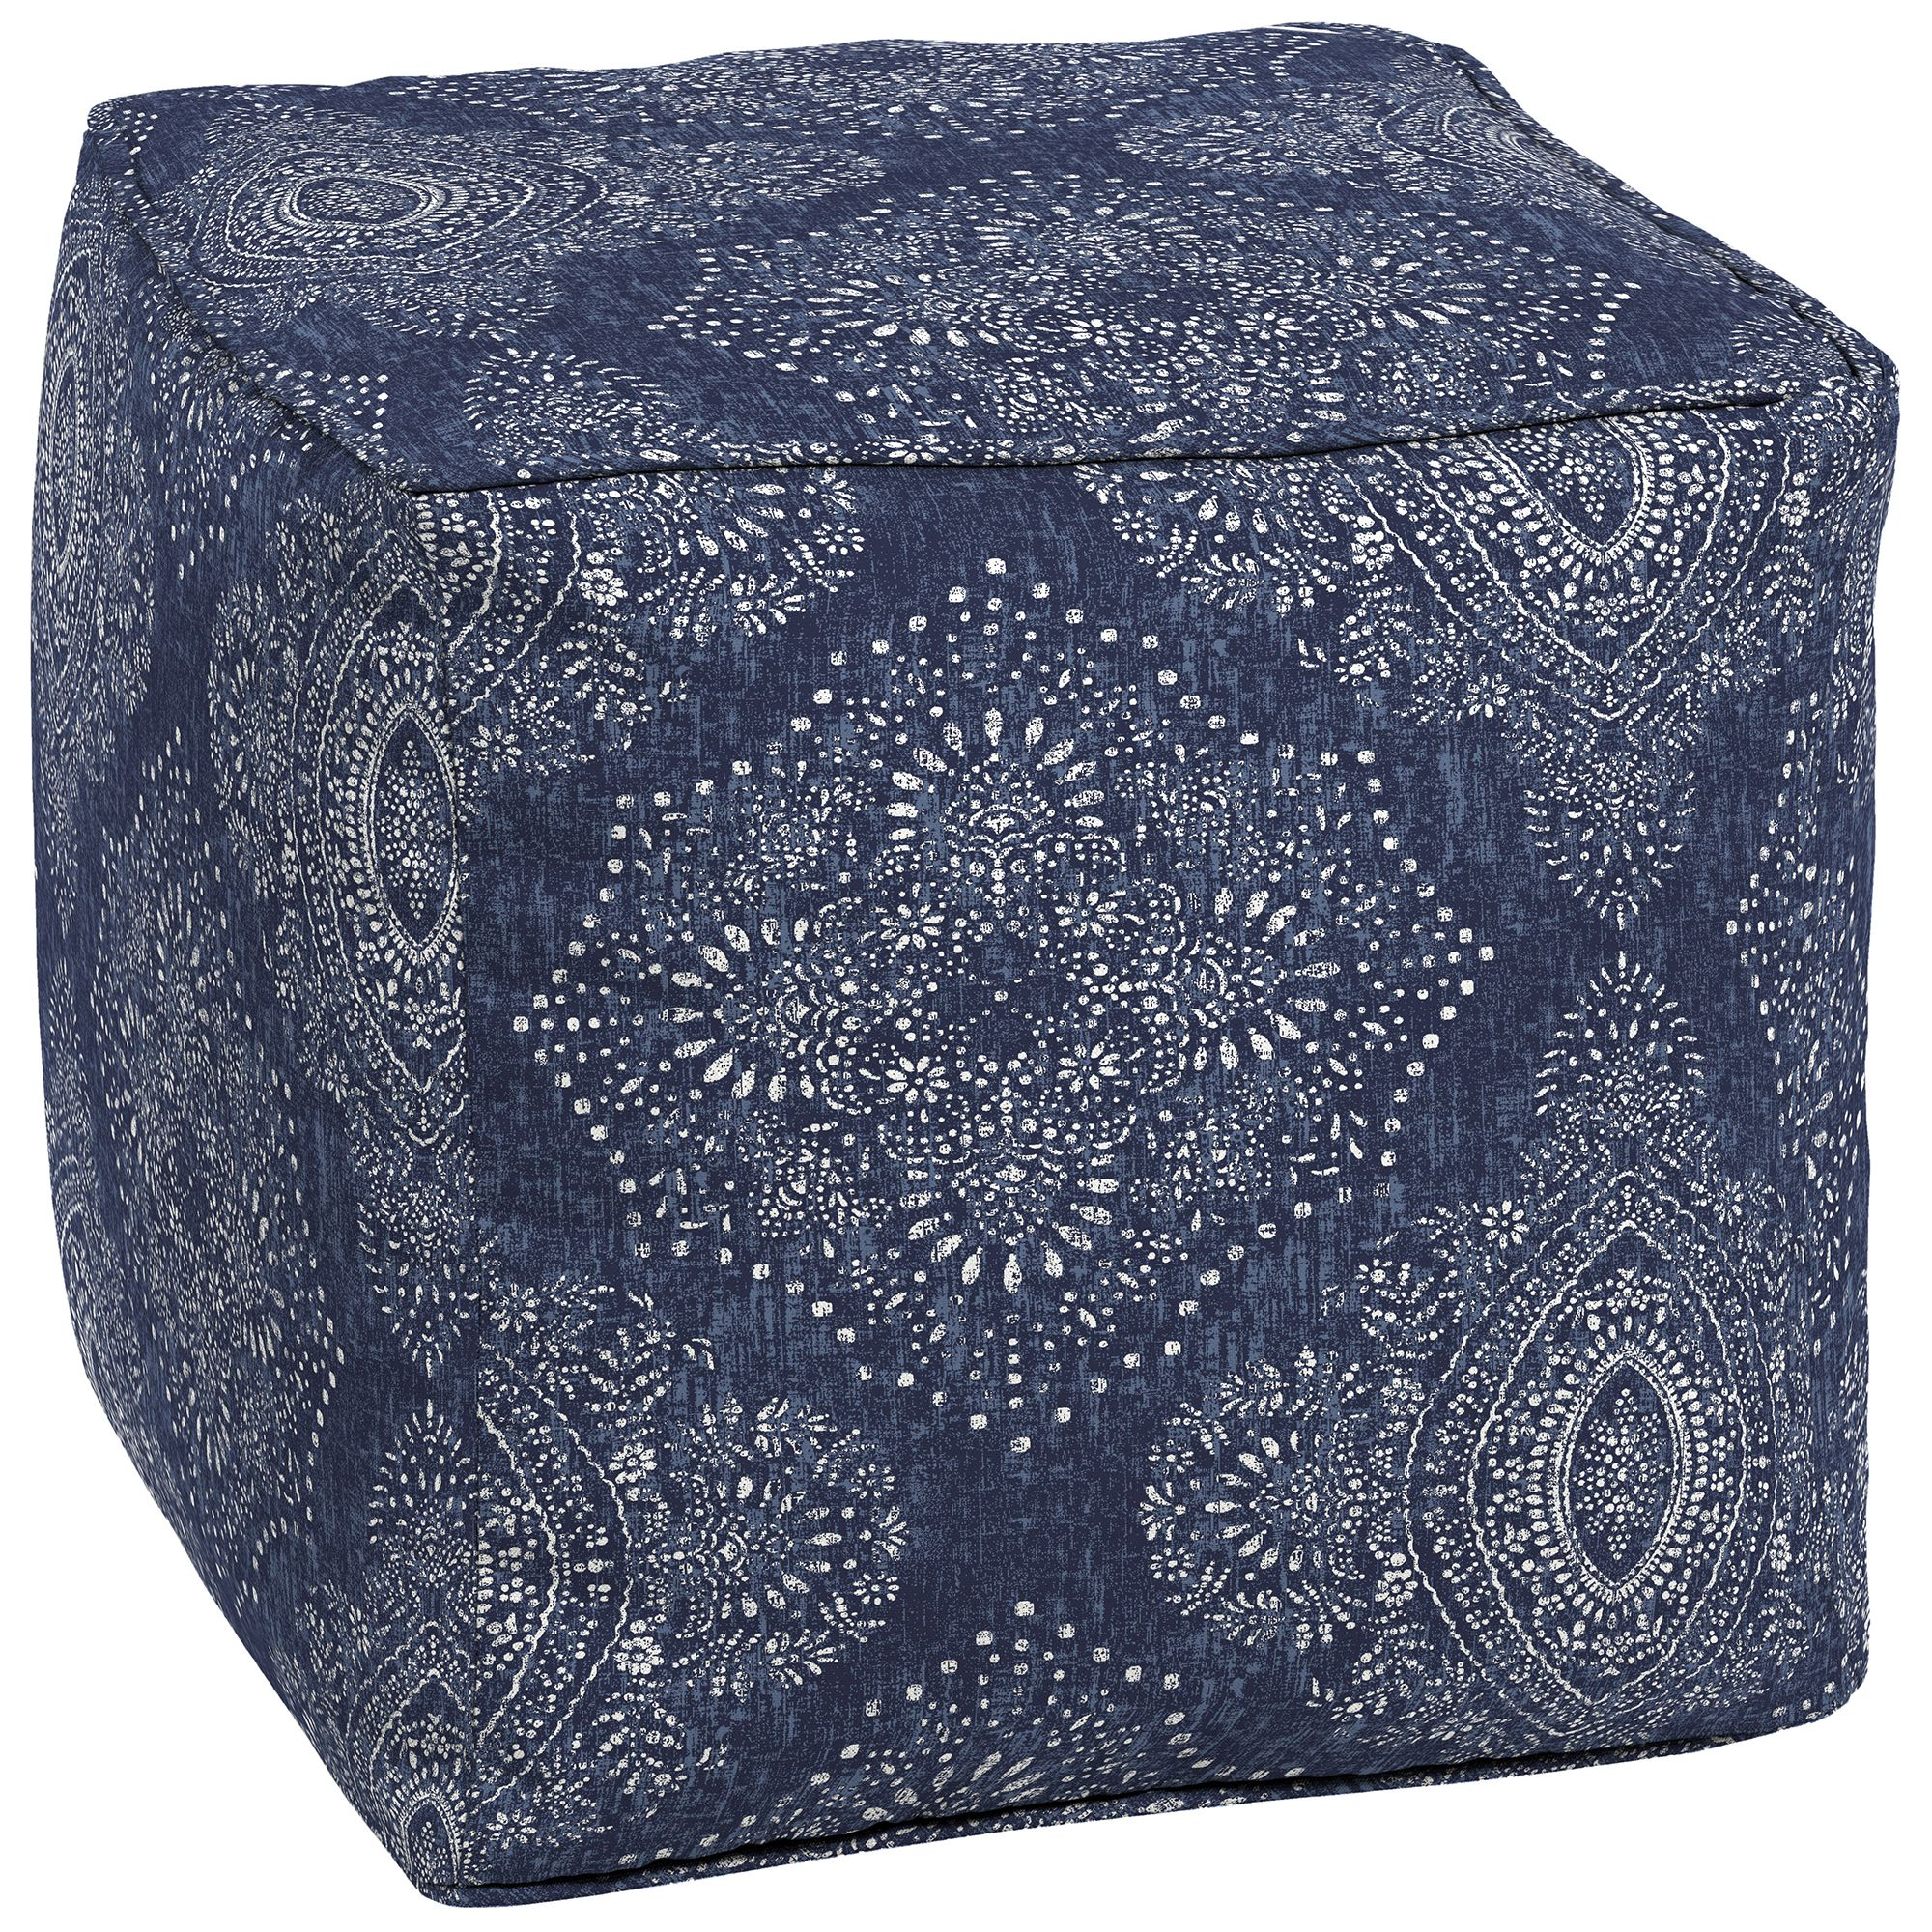 Better Homes And Gardens Pointelized Ogee Outdoor Outdoor Pouf by Better Homes & Gardens